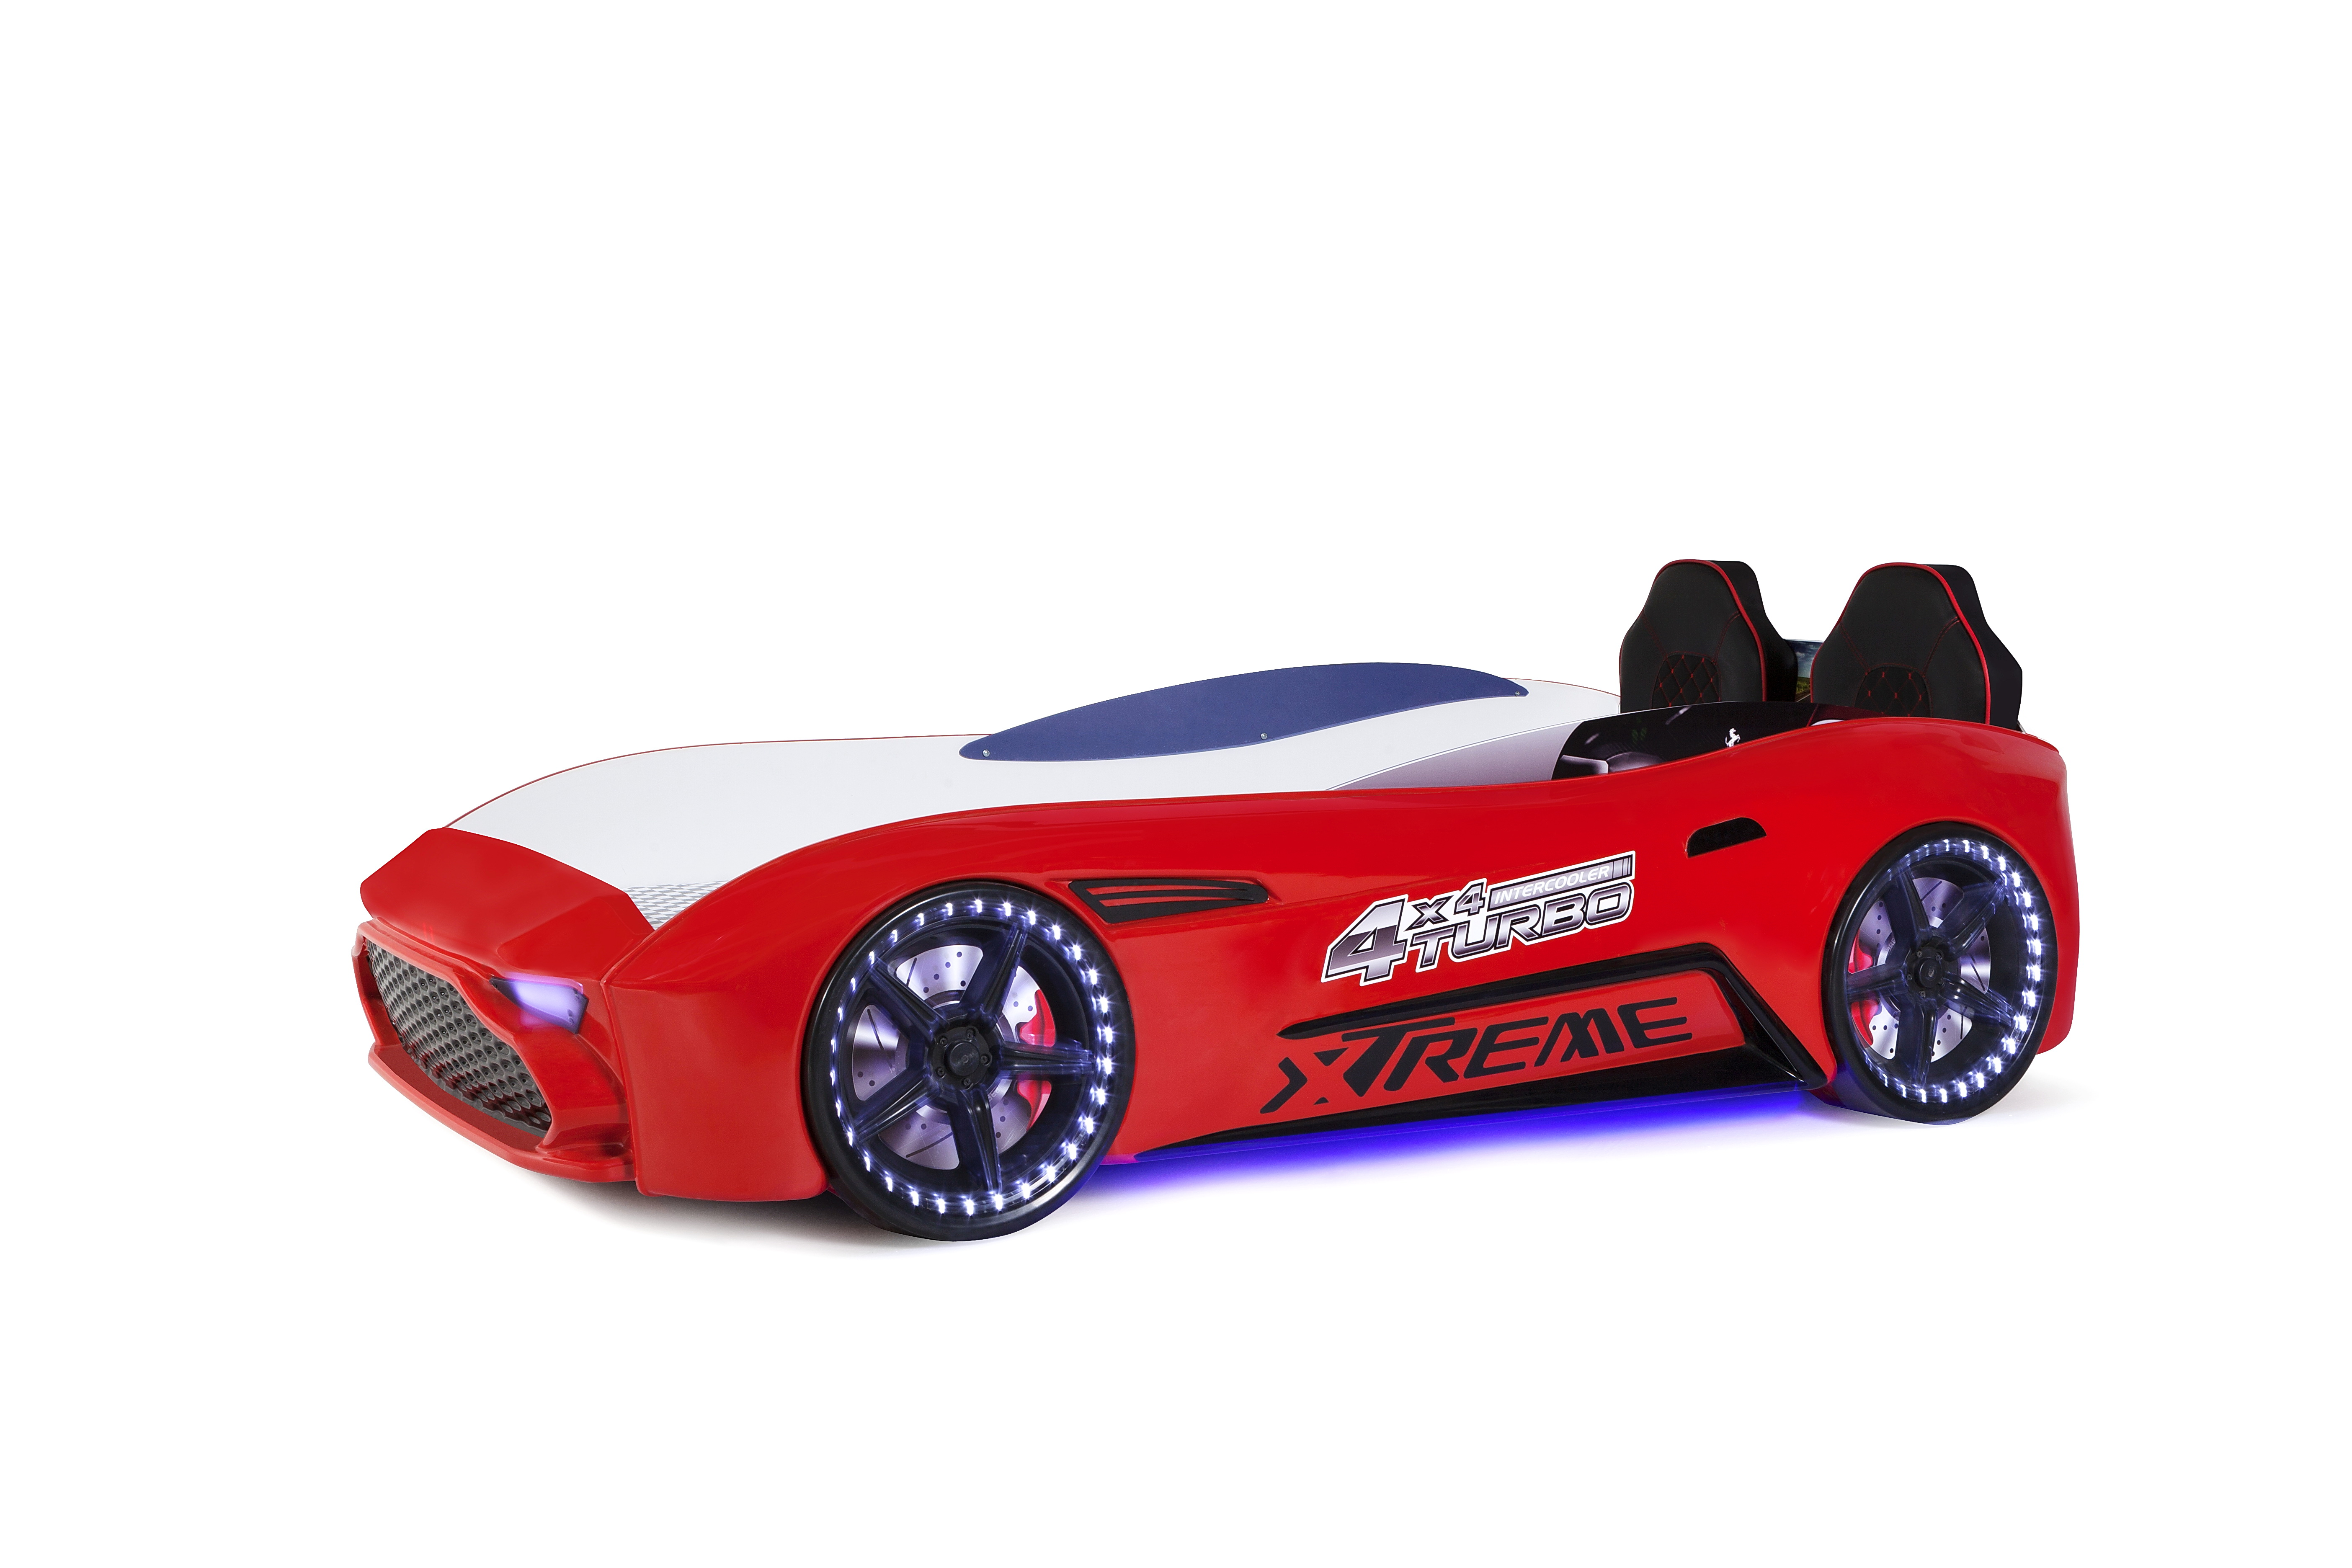 Autobettzimmer GT18 Extreme Turbo 4-teilig in Rot